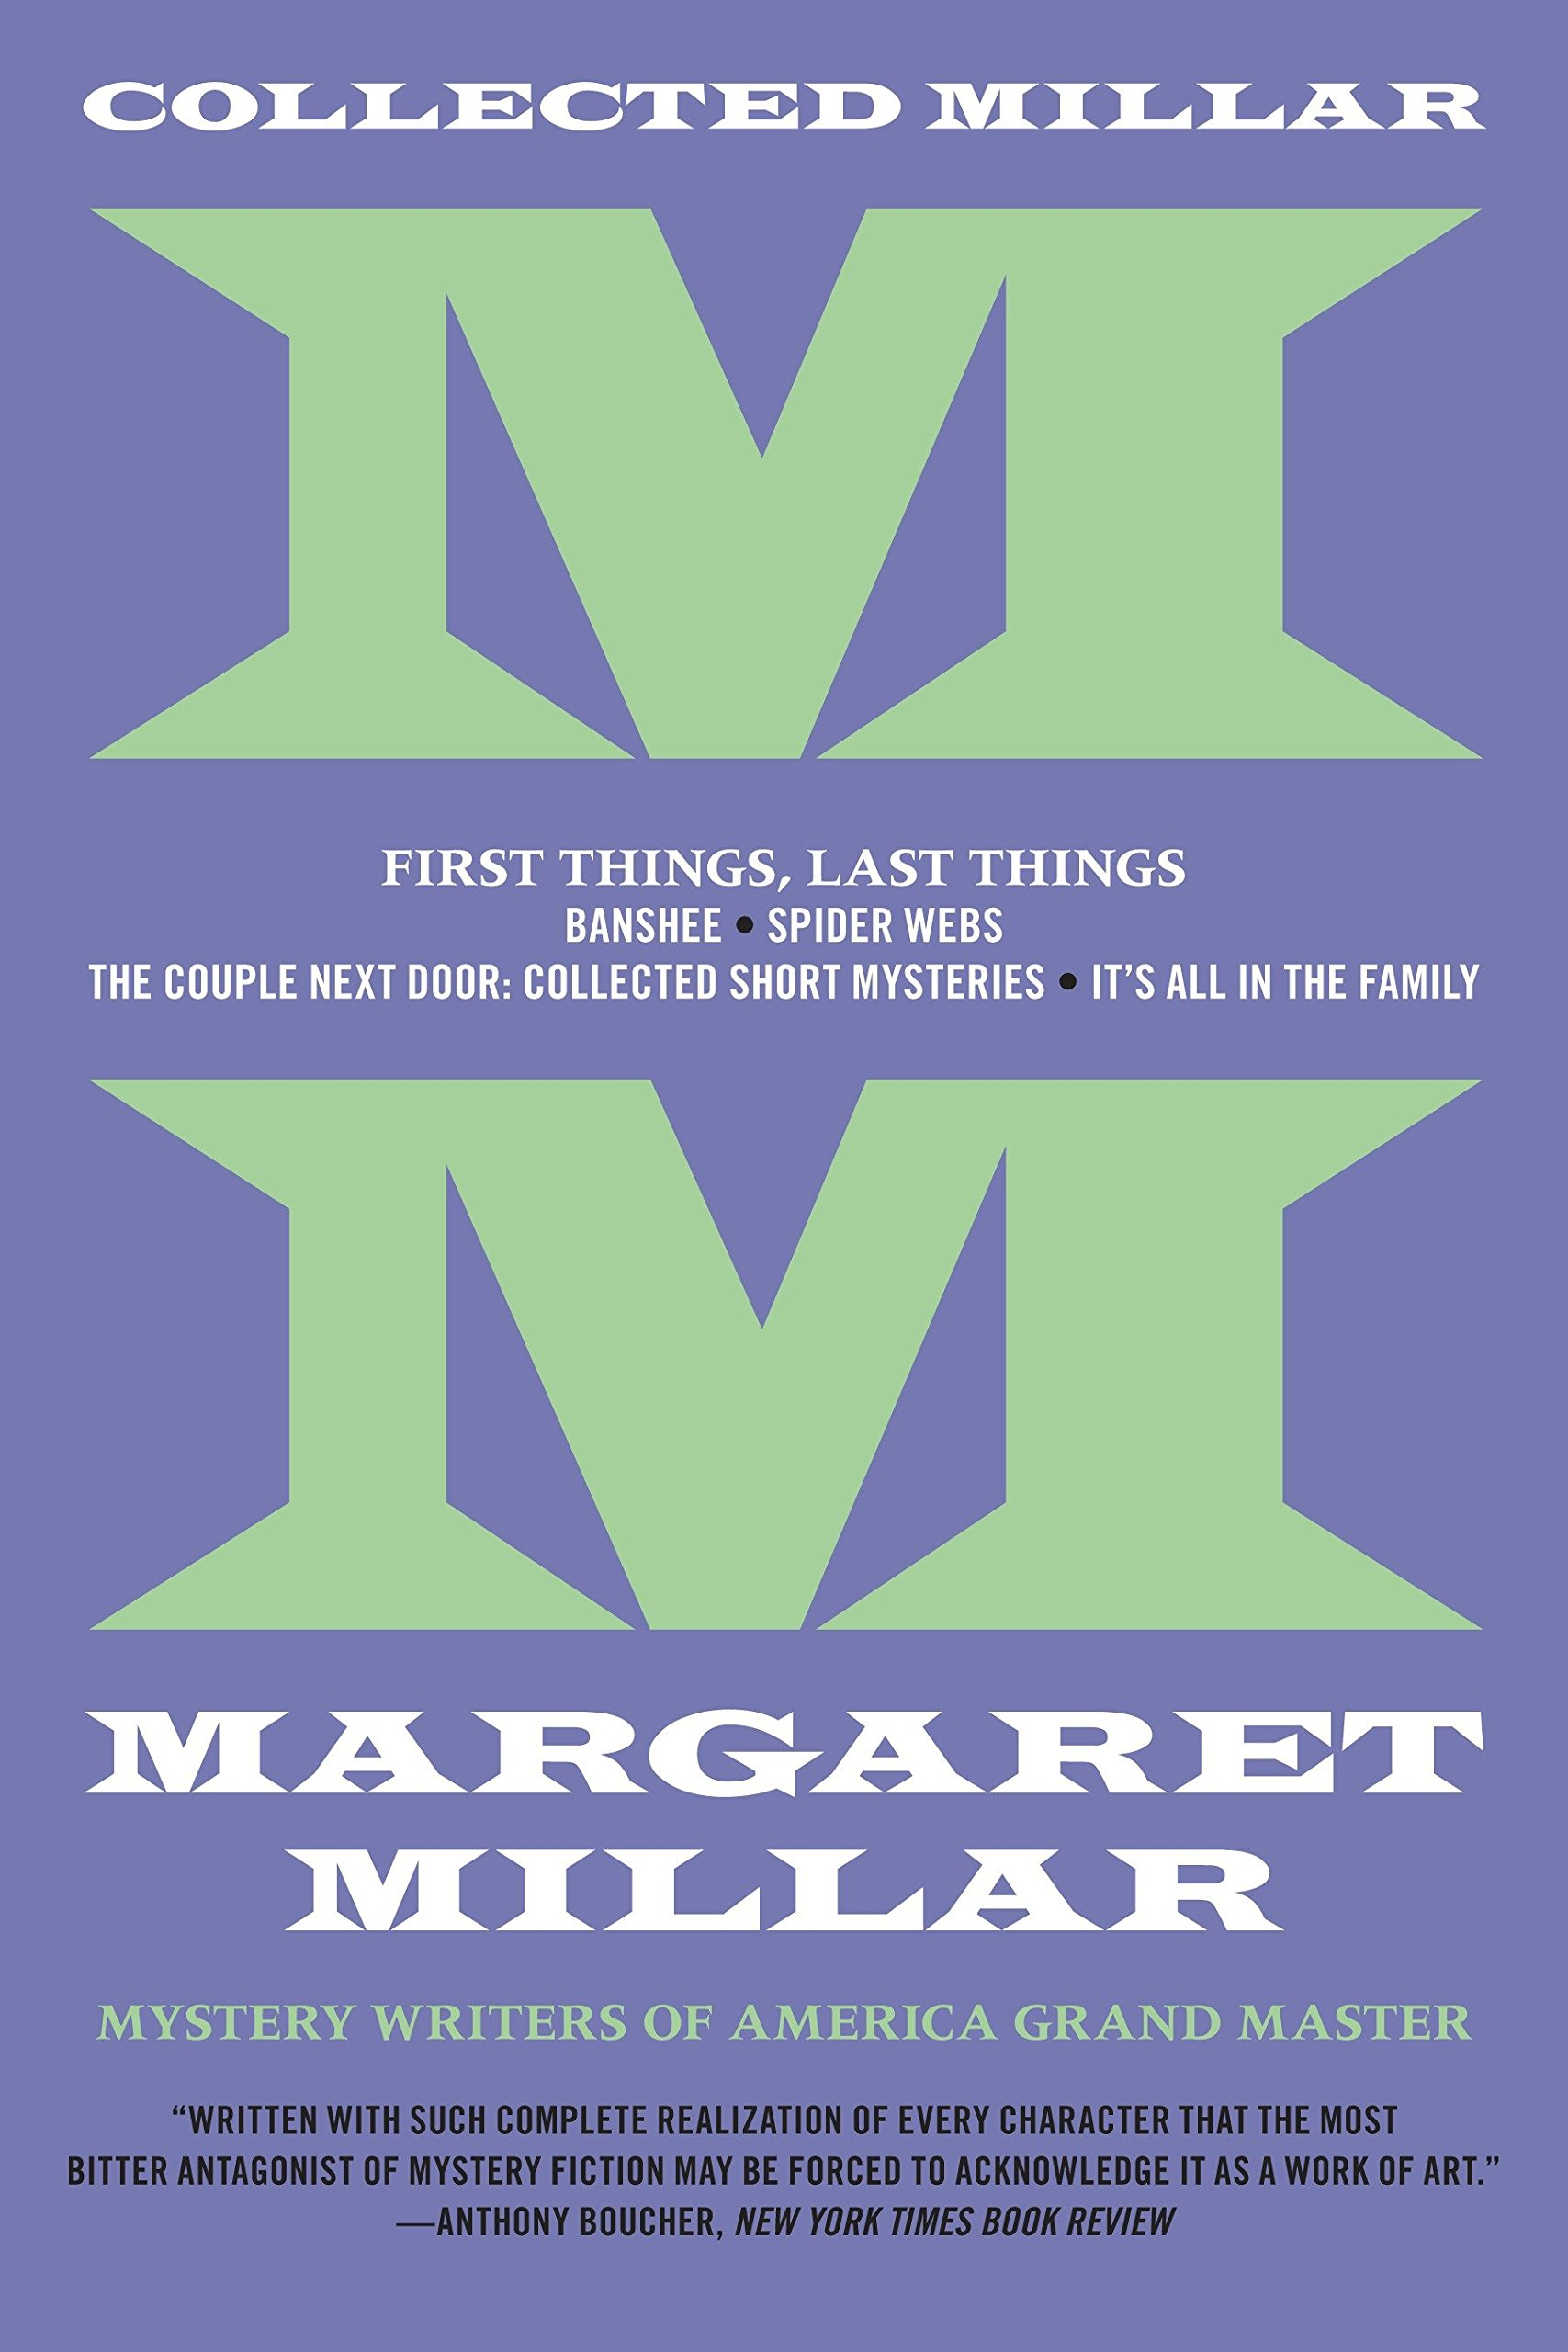 Amazoncom Collected Millar First Things Last Things